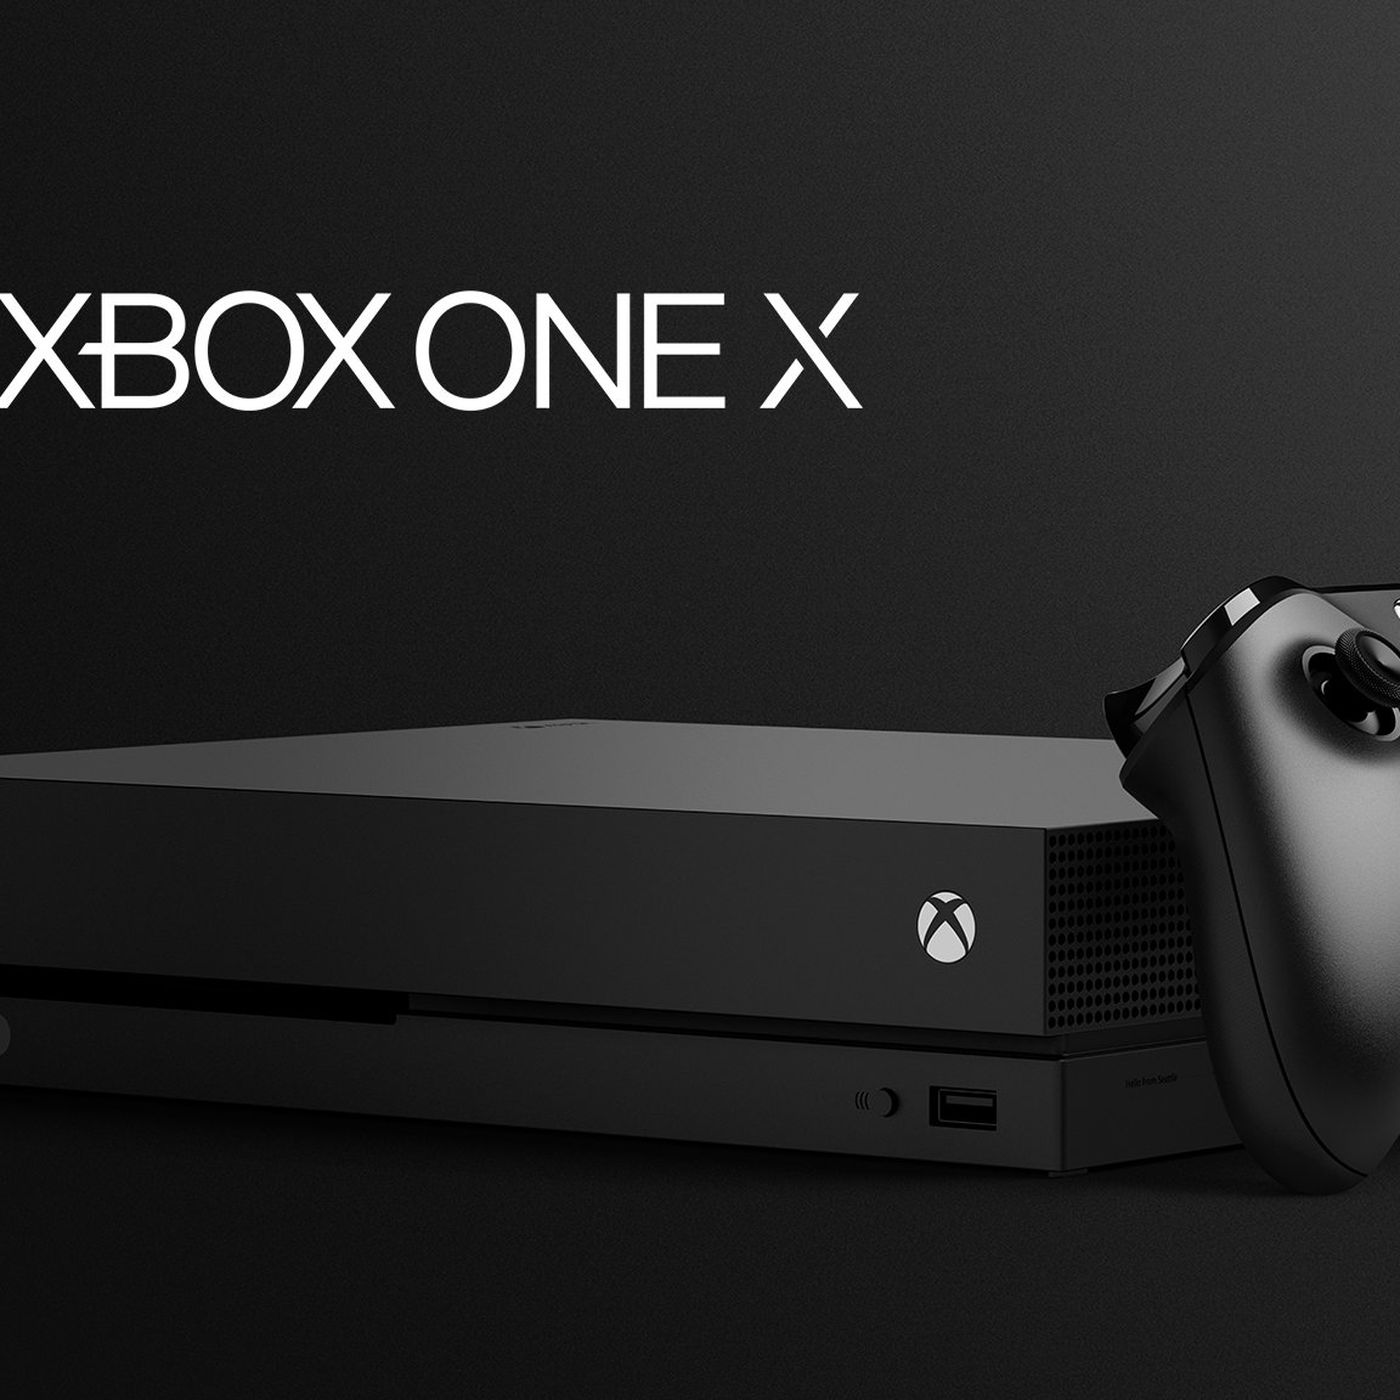 Xbox One X Is Microsofts Next Game Console Arriving On